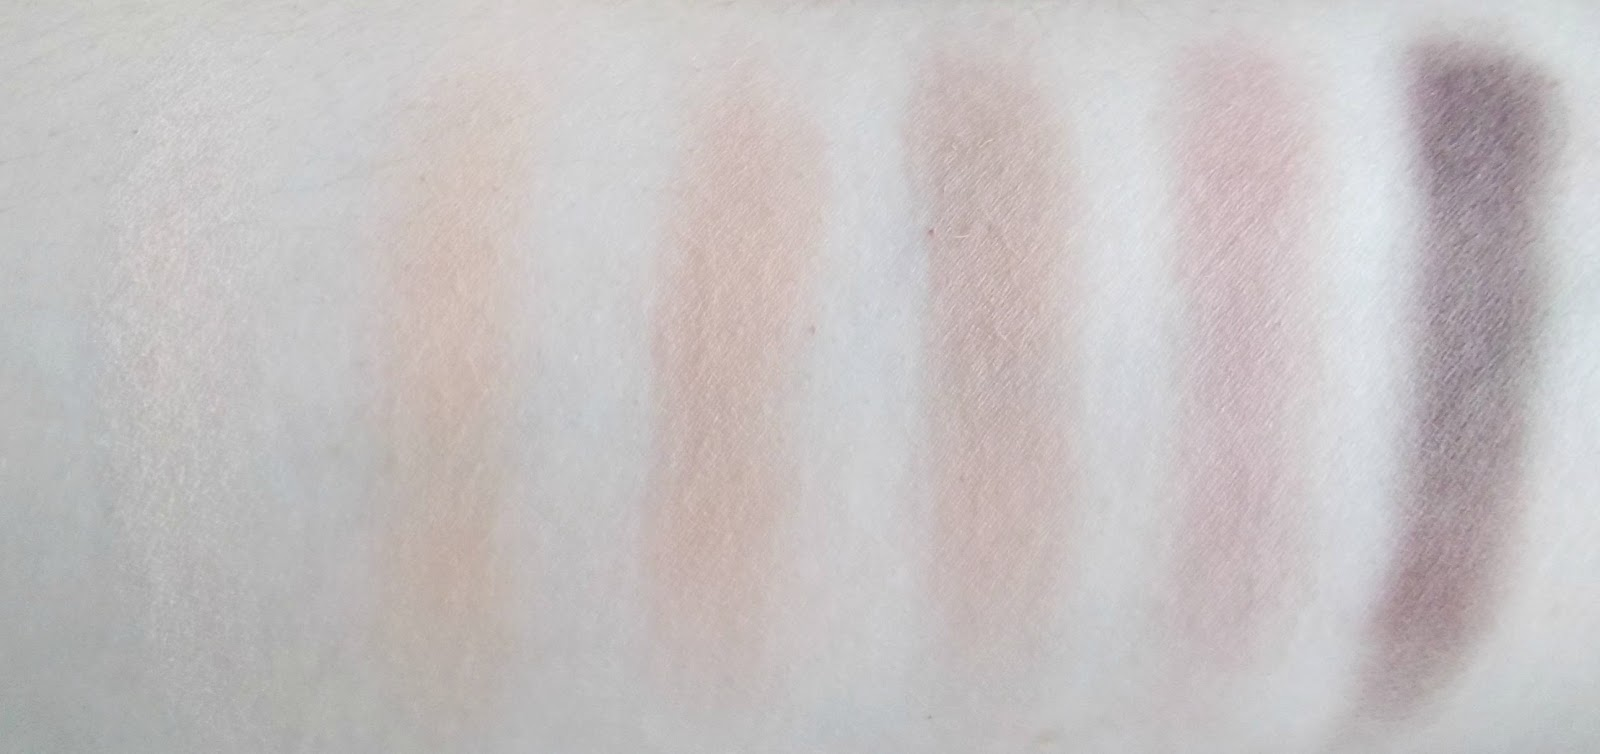 Urban Decay Naked Ultimate Basics swatches 1st row